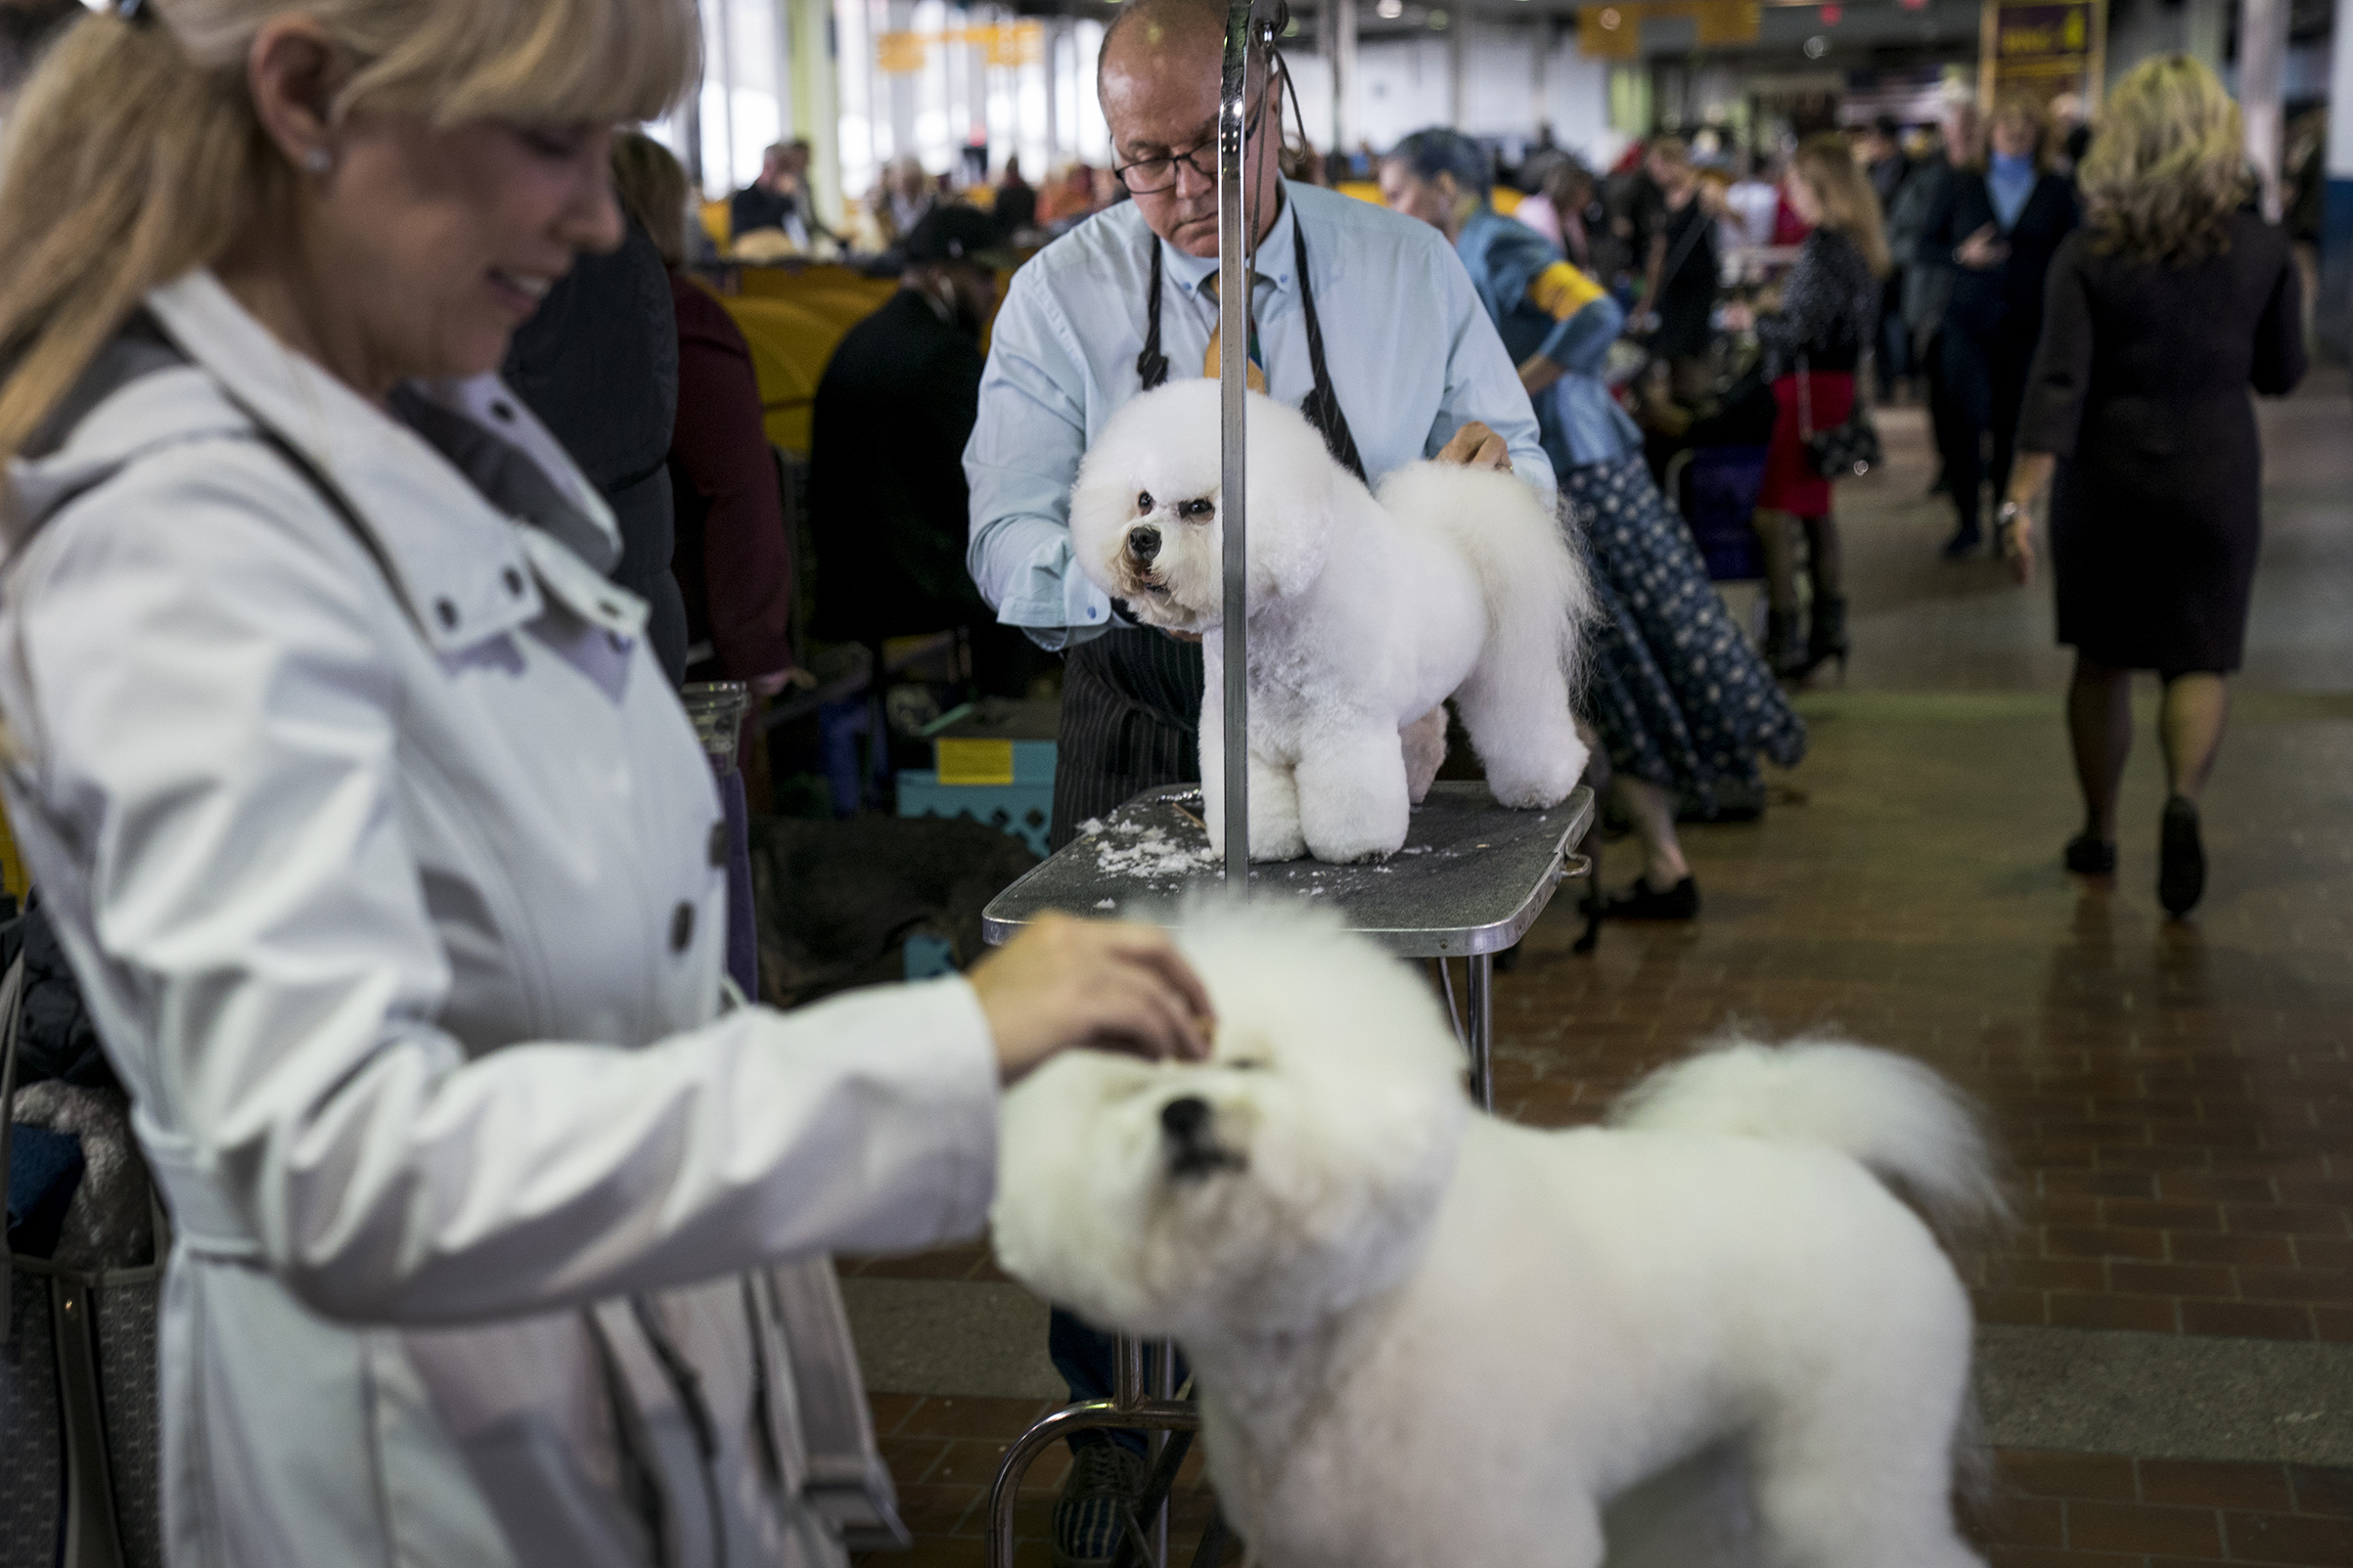 Bichon Frise dogs get groomed backstage at the 142nd Westminster Kennel Club Dog Show at The Piers in New York on Feb. 12, 2018.